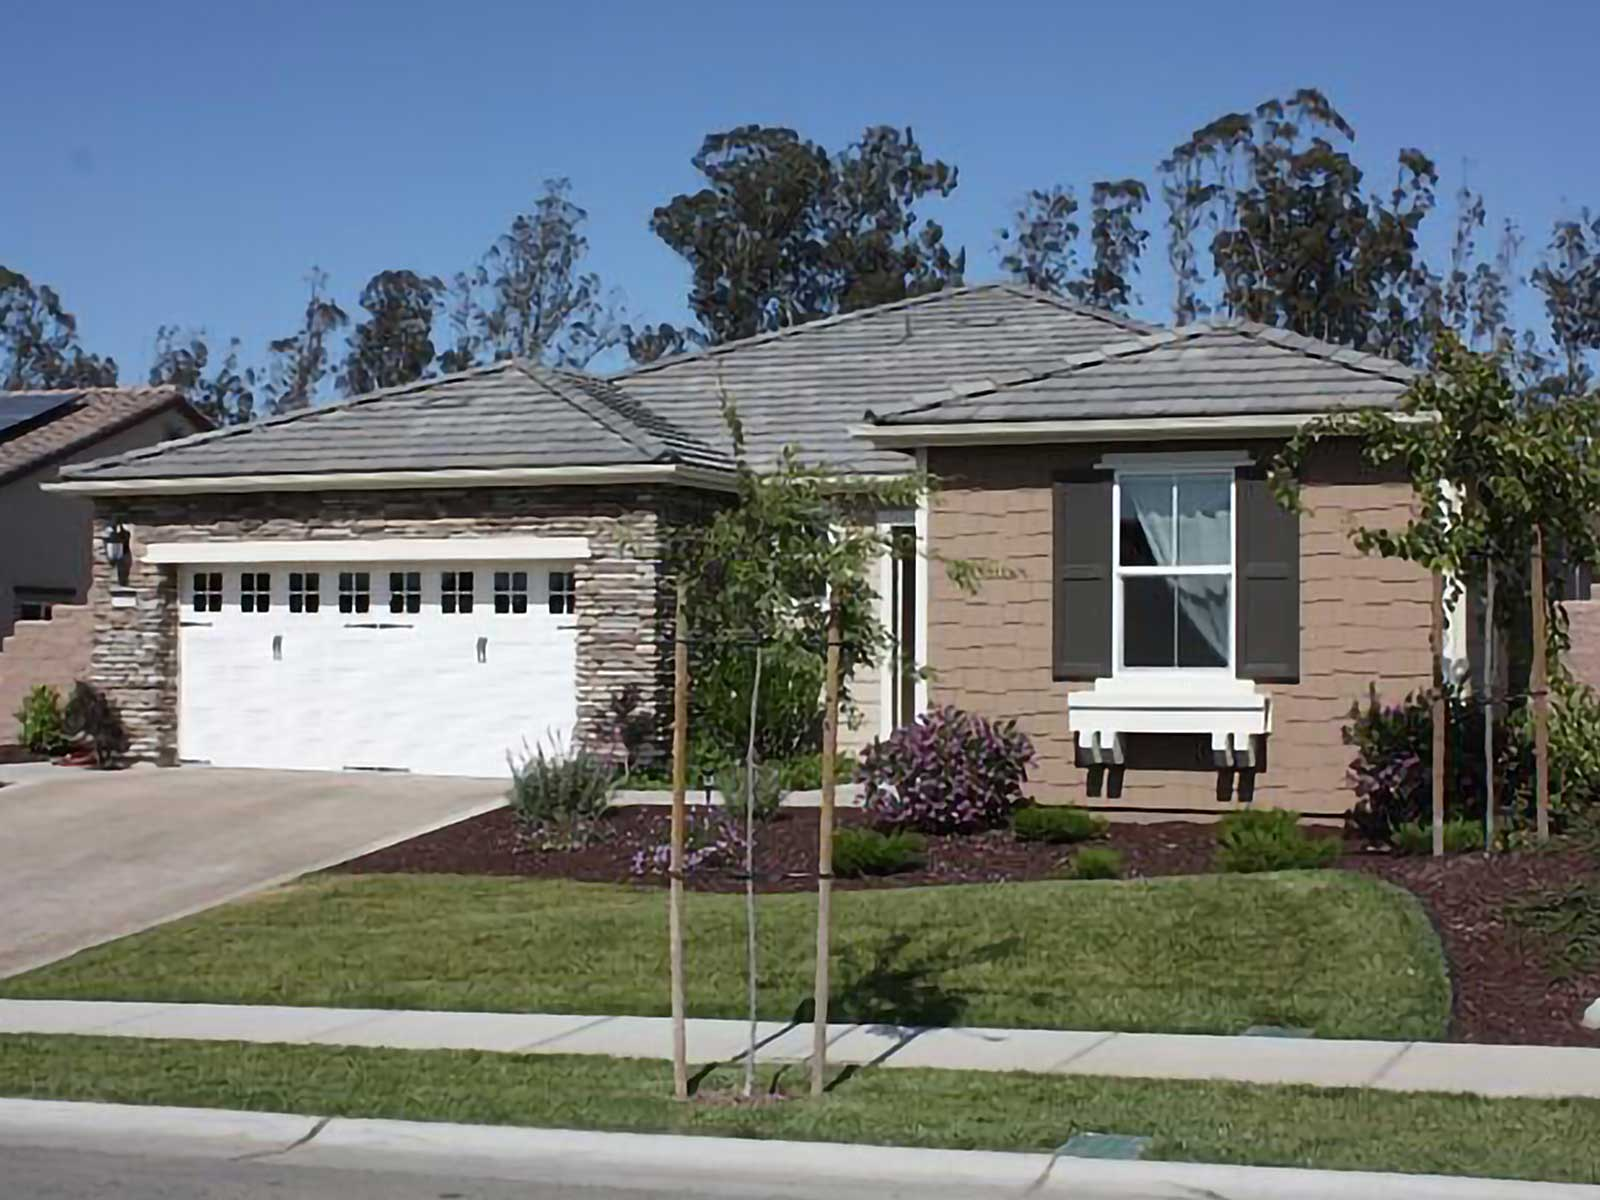 Trilogy Monarch Dunes real estate home featured